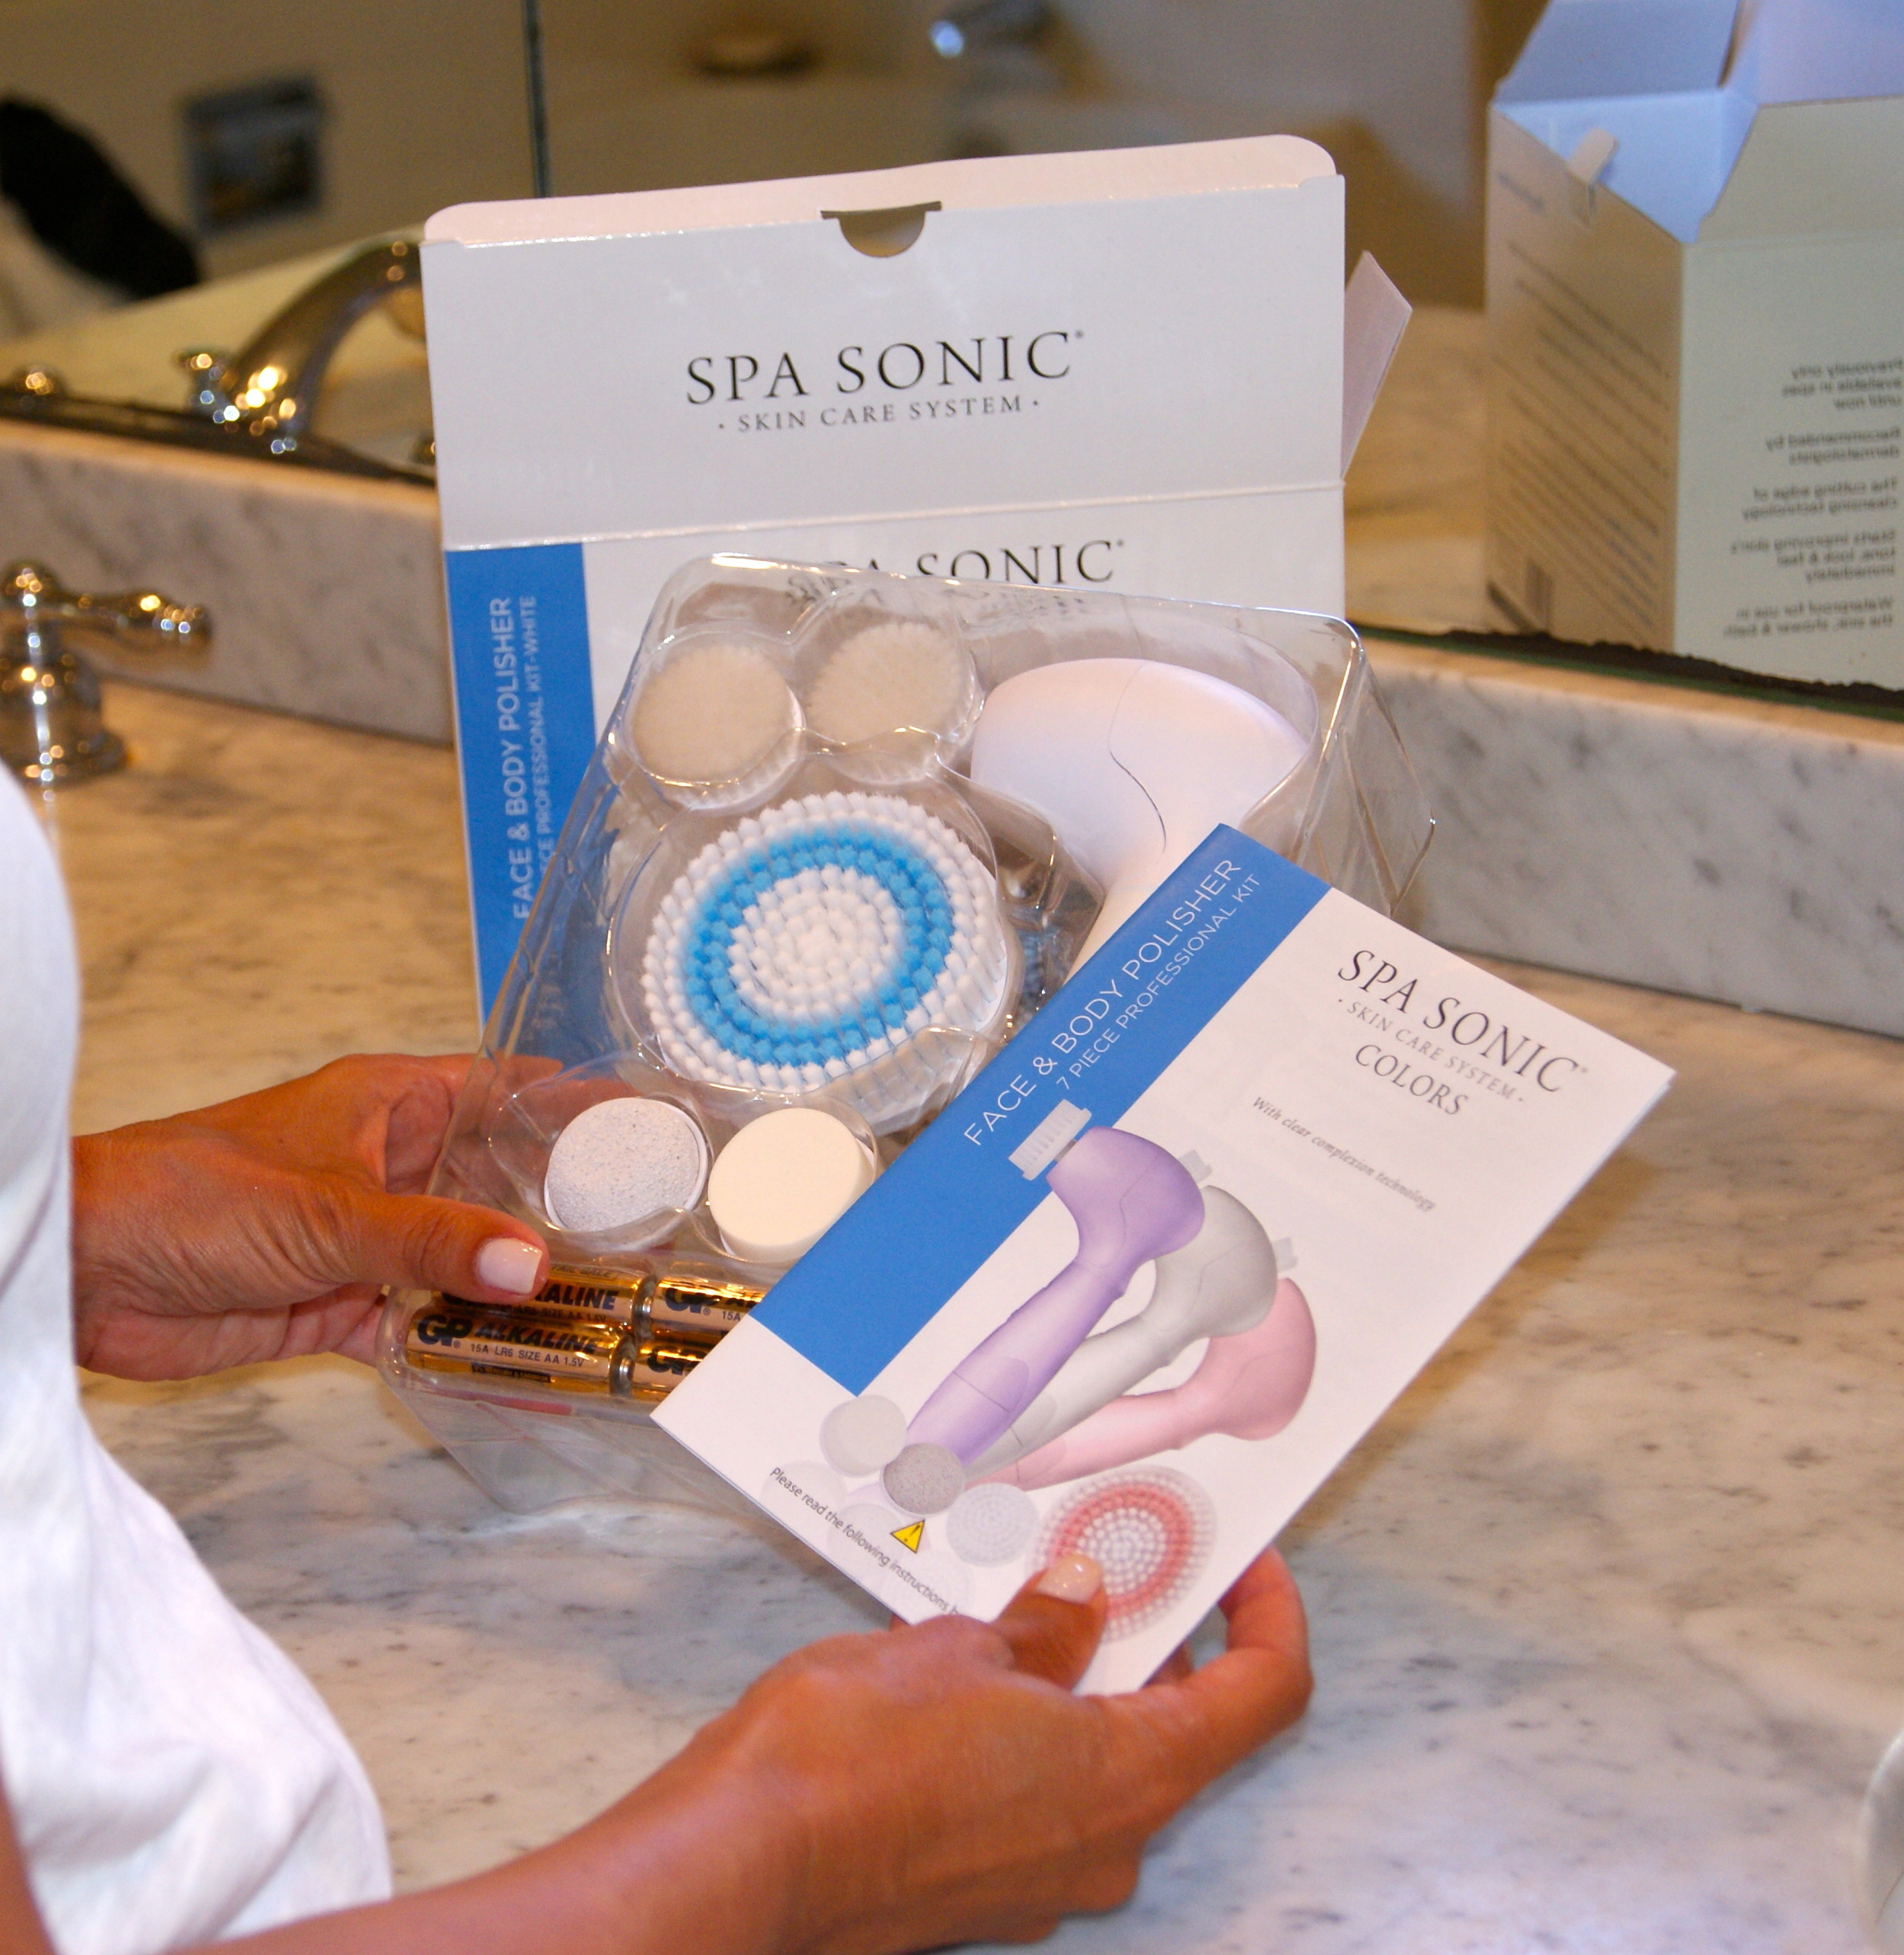 All thebrushes you need to polish your face and body including a pumice stone for your feet!